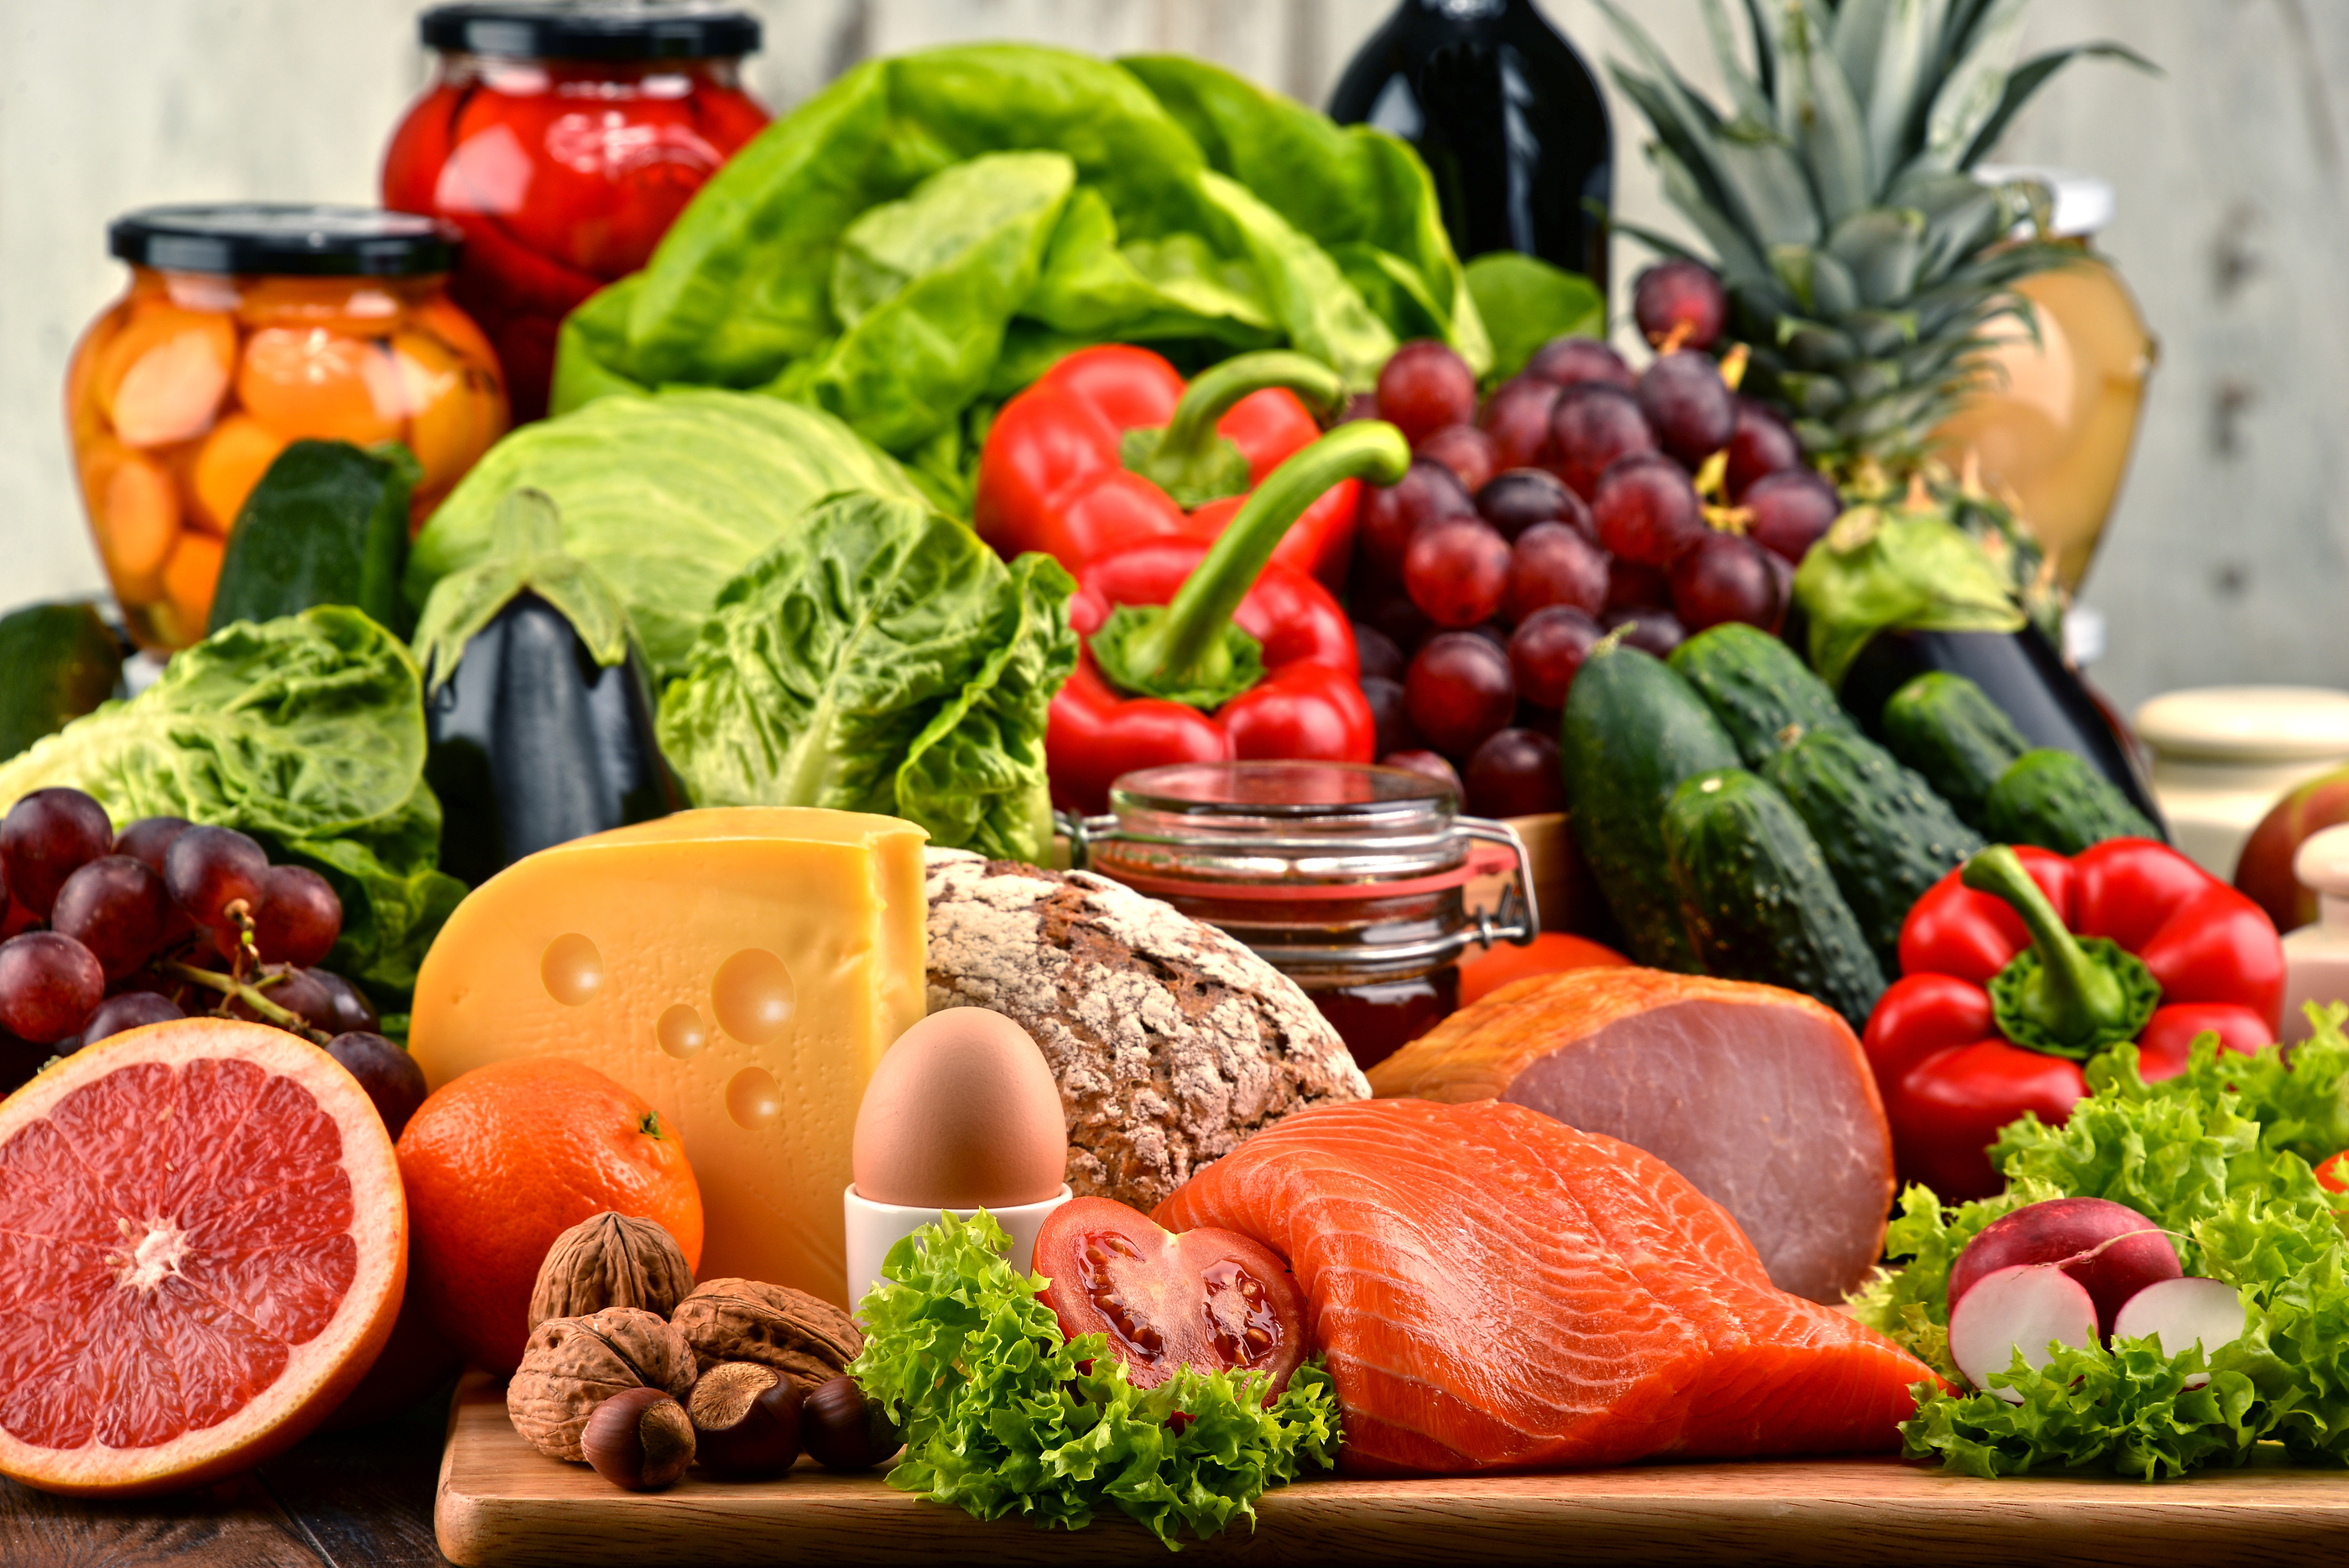 Health Foods That You Should Always Avoid